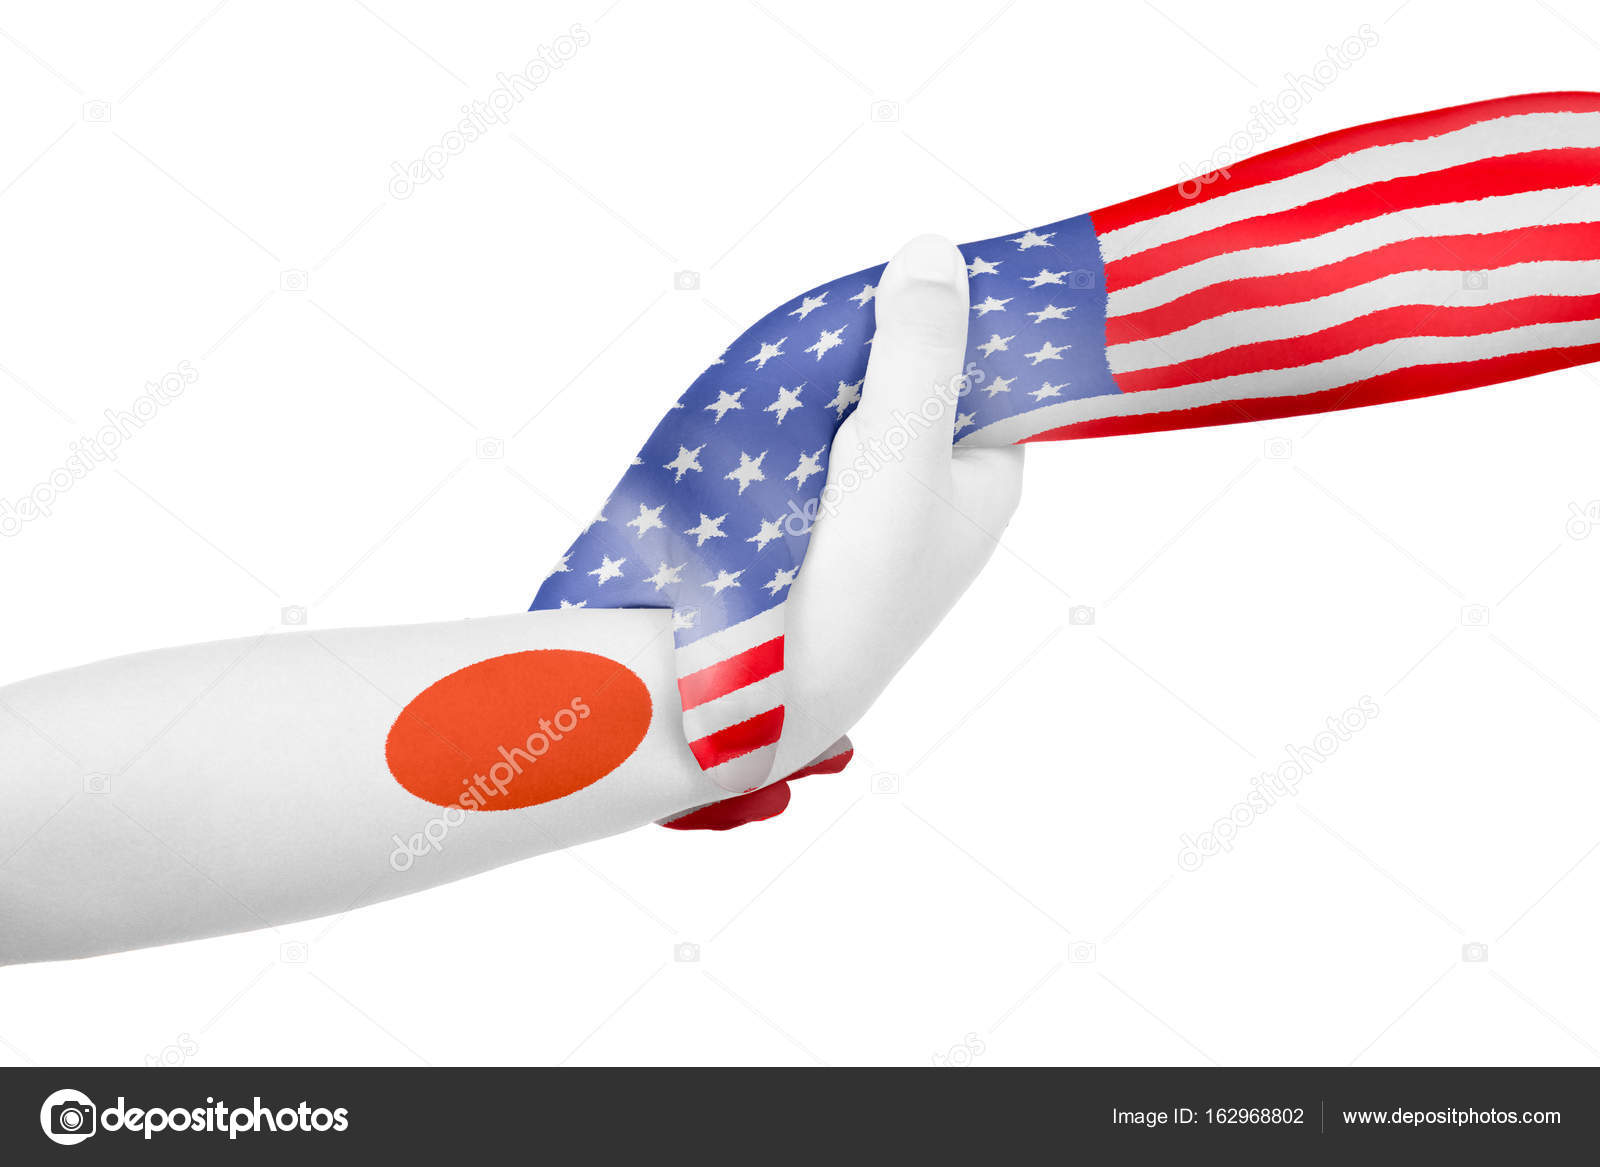 Helping Hands Of America >> Helping Hands Of United States Of America And Japan Stock